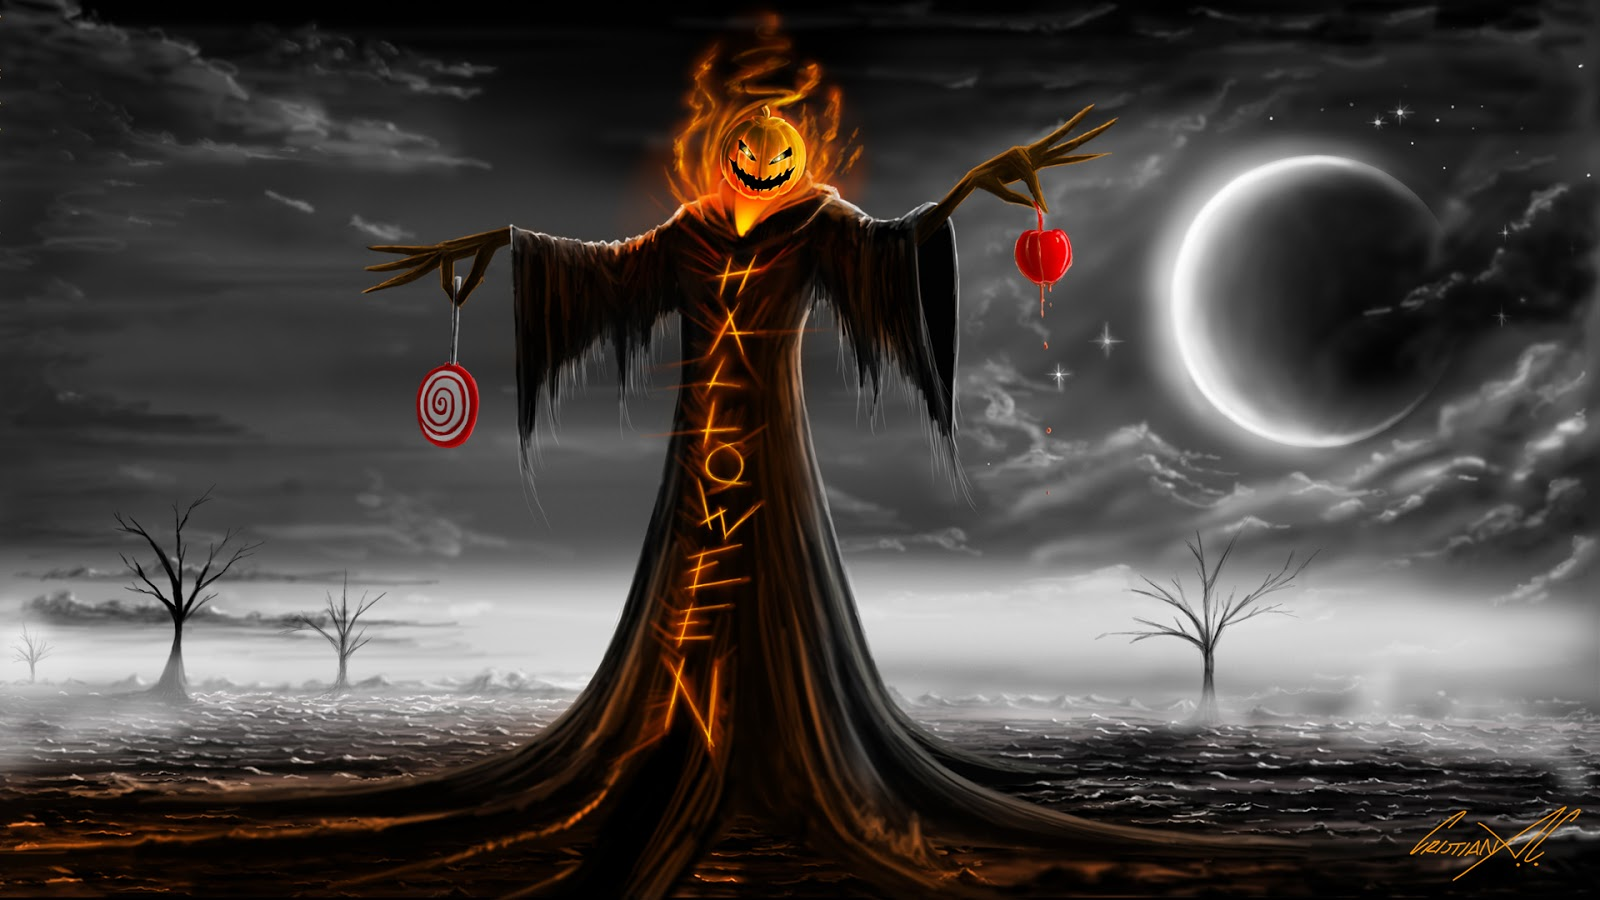 Pictures happy halloween 2012 wallpapers amazing funny beautiful nature travel and much - Funny happy halloween wallpaper ...